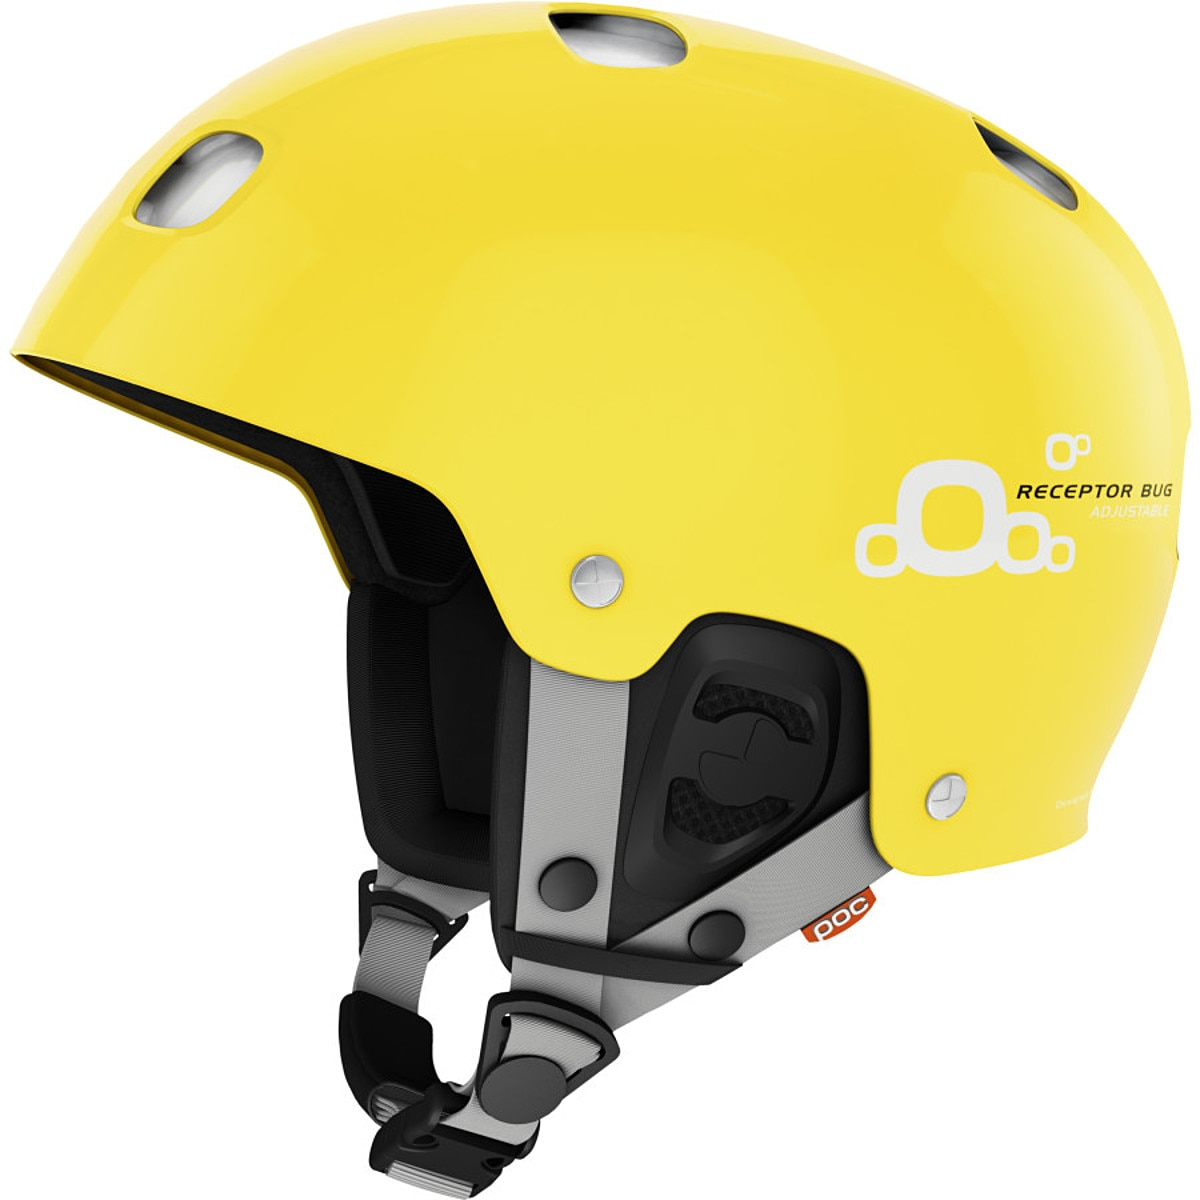 photo: POC Receptor Bug Adjustable Helmet